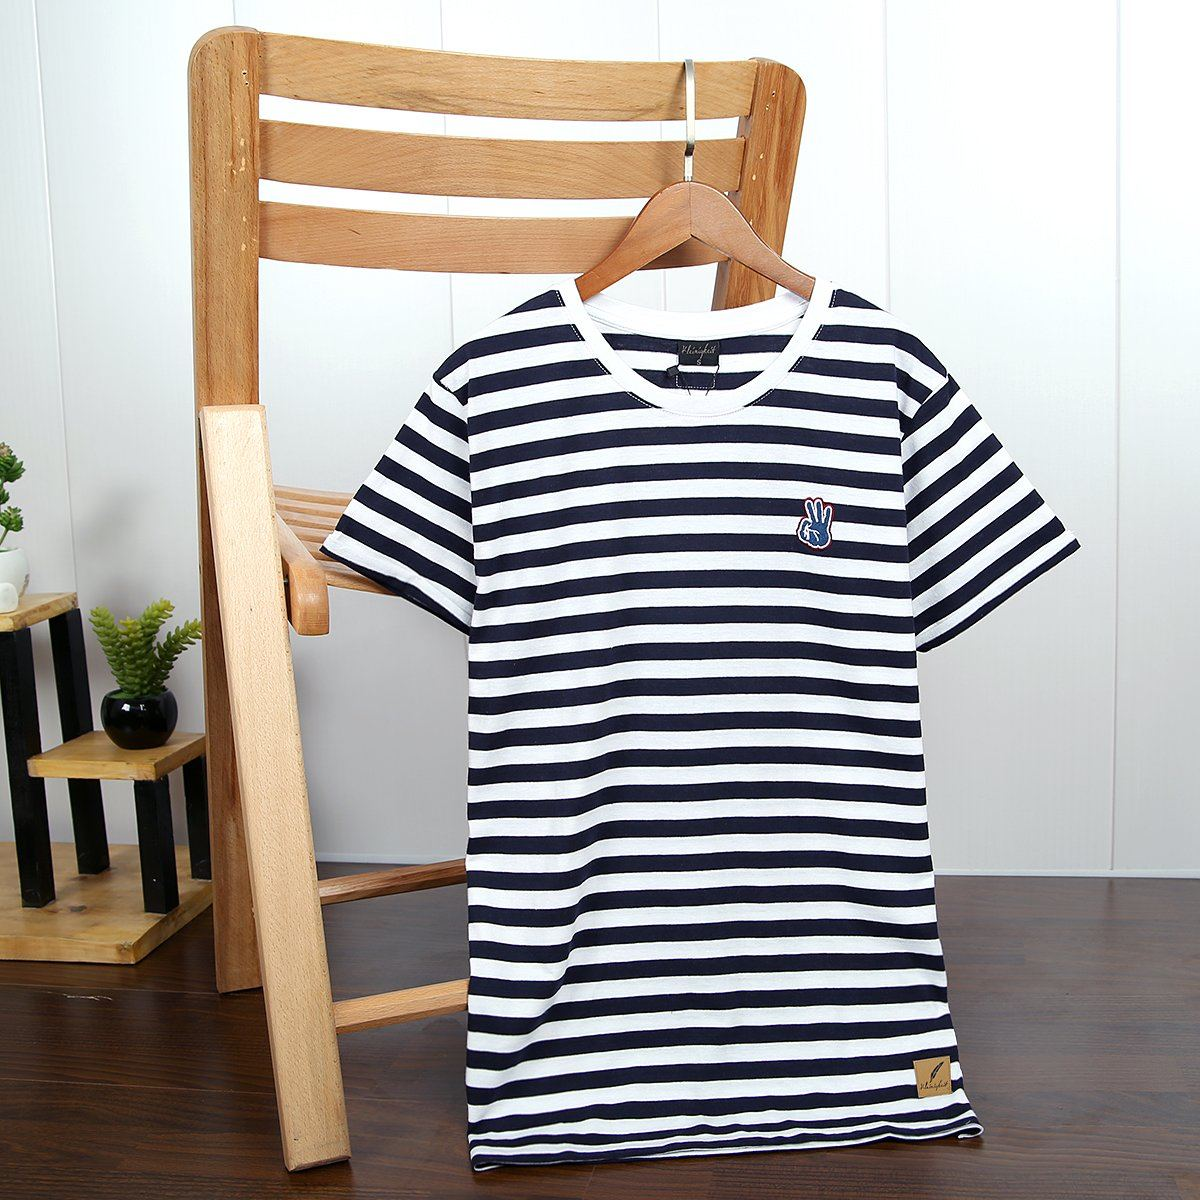 Men Navy and White Striped Soft T-Shirt With Contrasting Logo (21096)